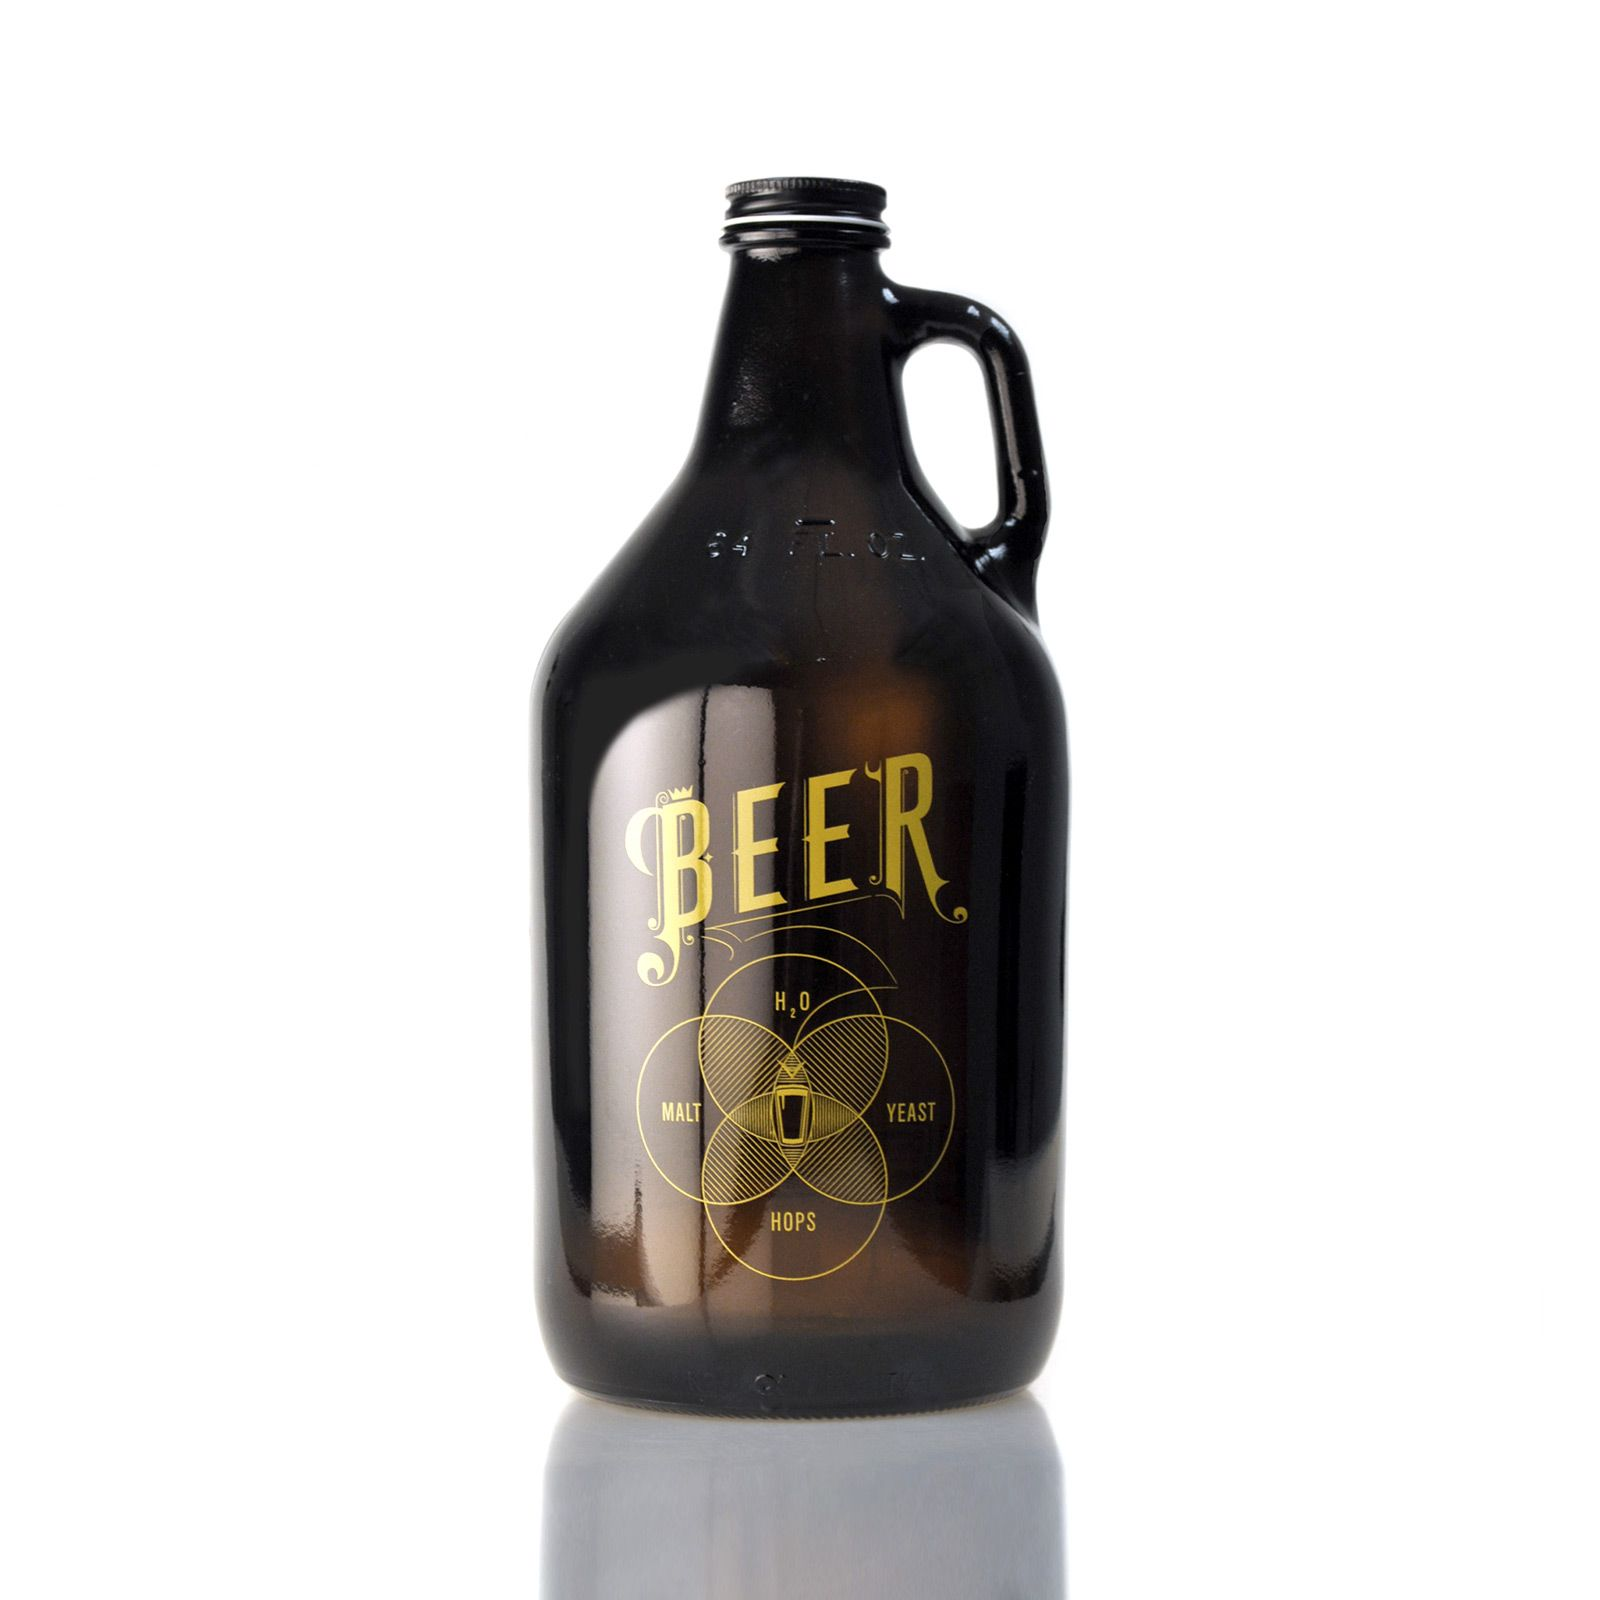 diagram it beer growler 17 99 details dimensions dimensions 5 diagram it beer growler 17 99 details dimensions dimensions 5 diam x 11